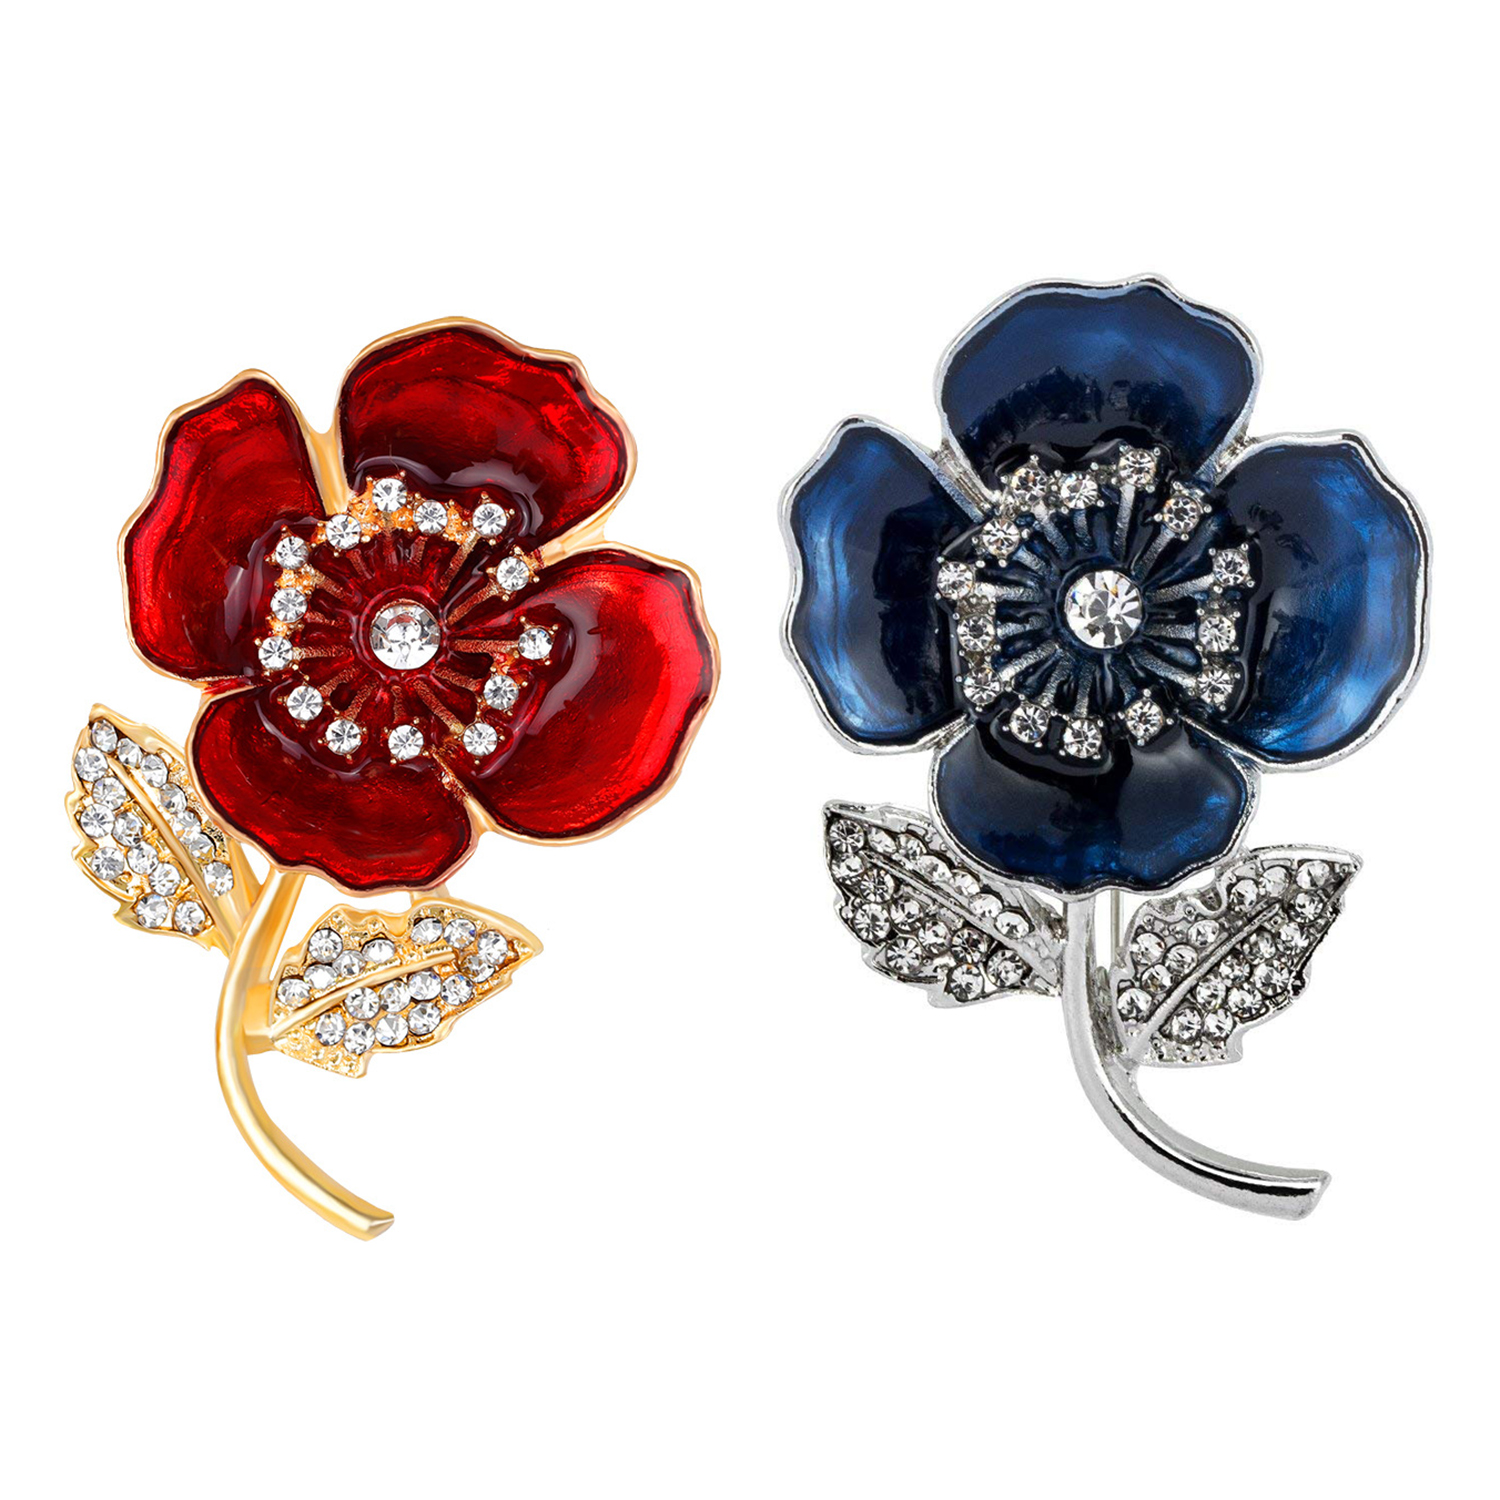 2X(Poppy Brooches Lapel Pin Badges Crystal Banquet Red Poppy Flower